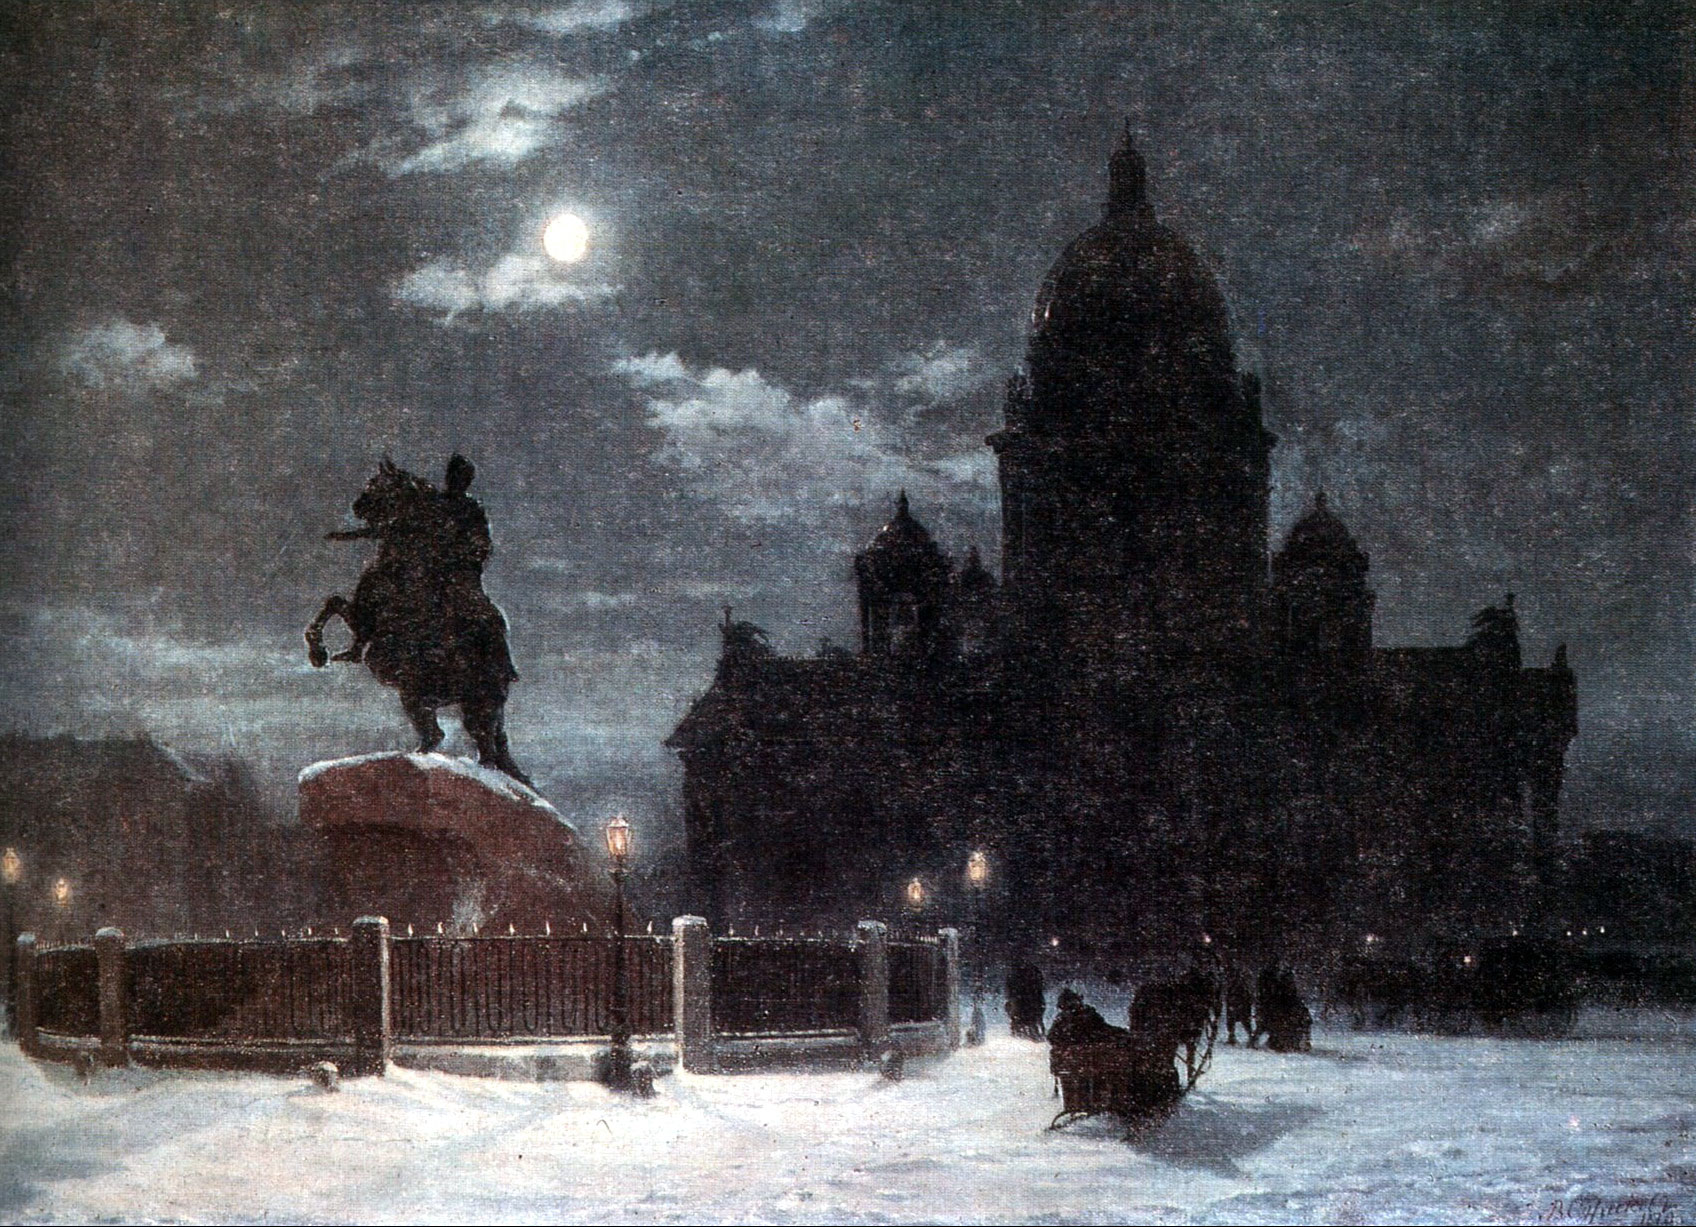 view-of-monument-to-peter-i-on-the-senate-square-in-st-petersburg-1870